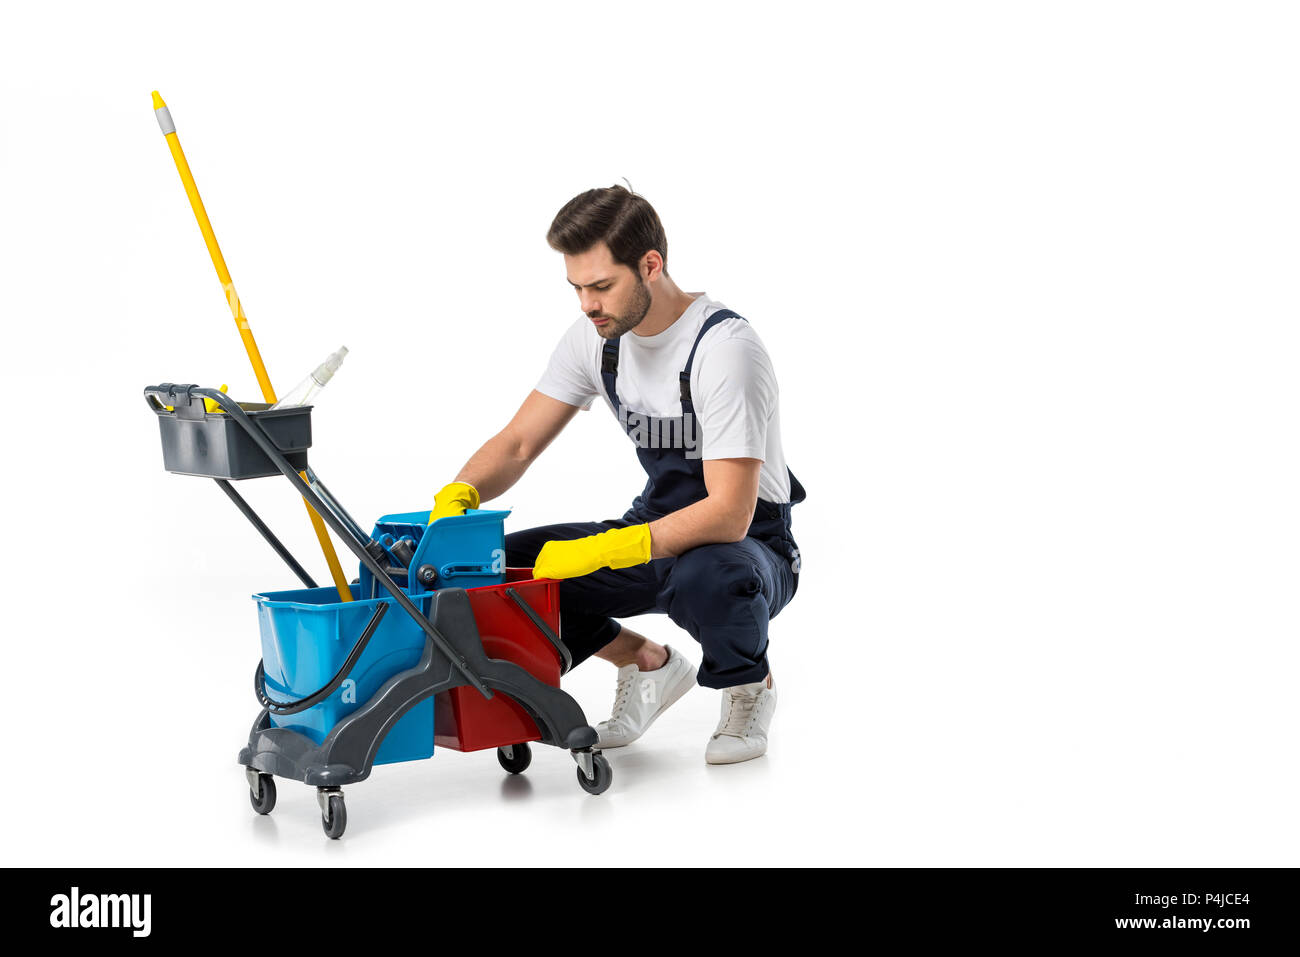 cleaner in uniform and rubber gloves with cart isolated on white - Stock Image